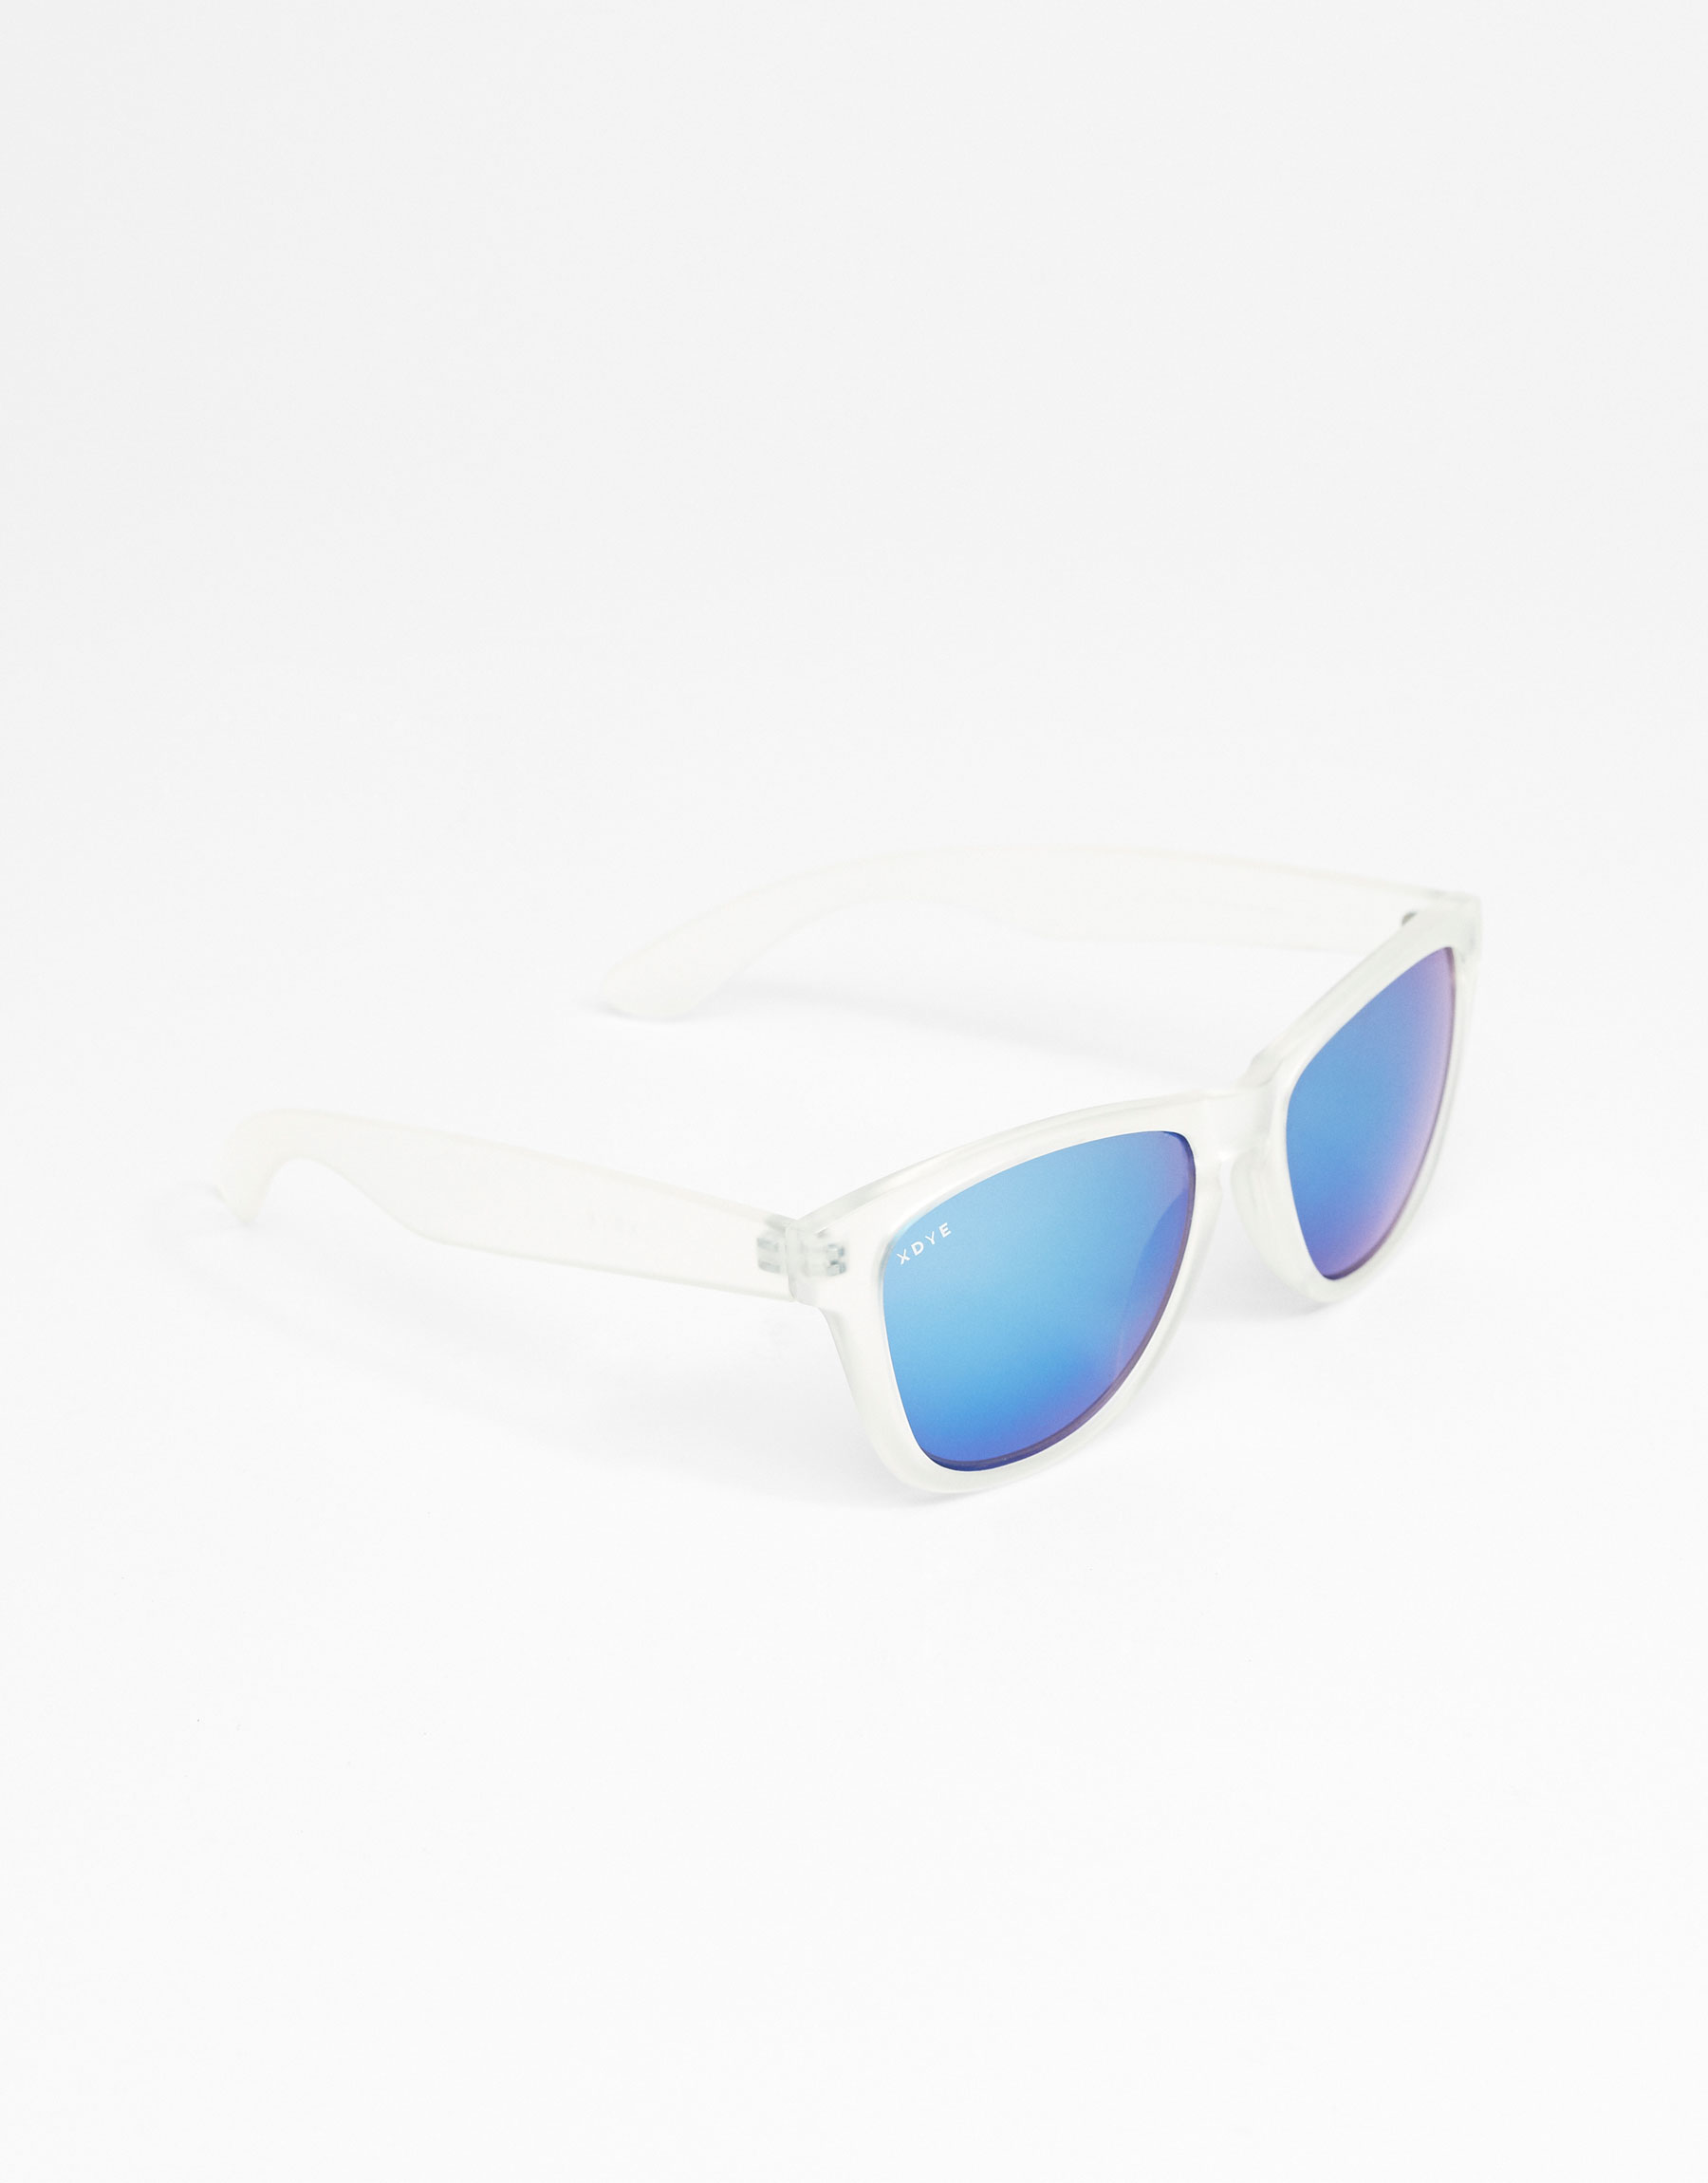 XDYE Sunglasses - Transparent Lens